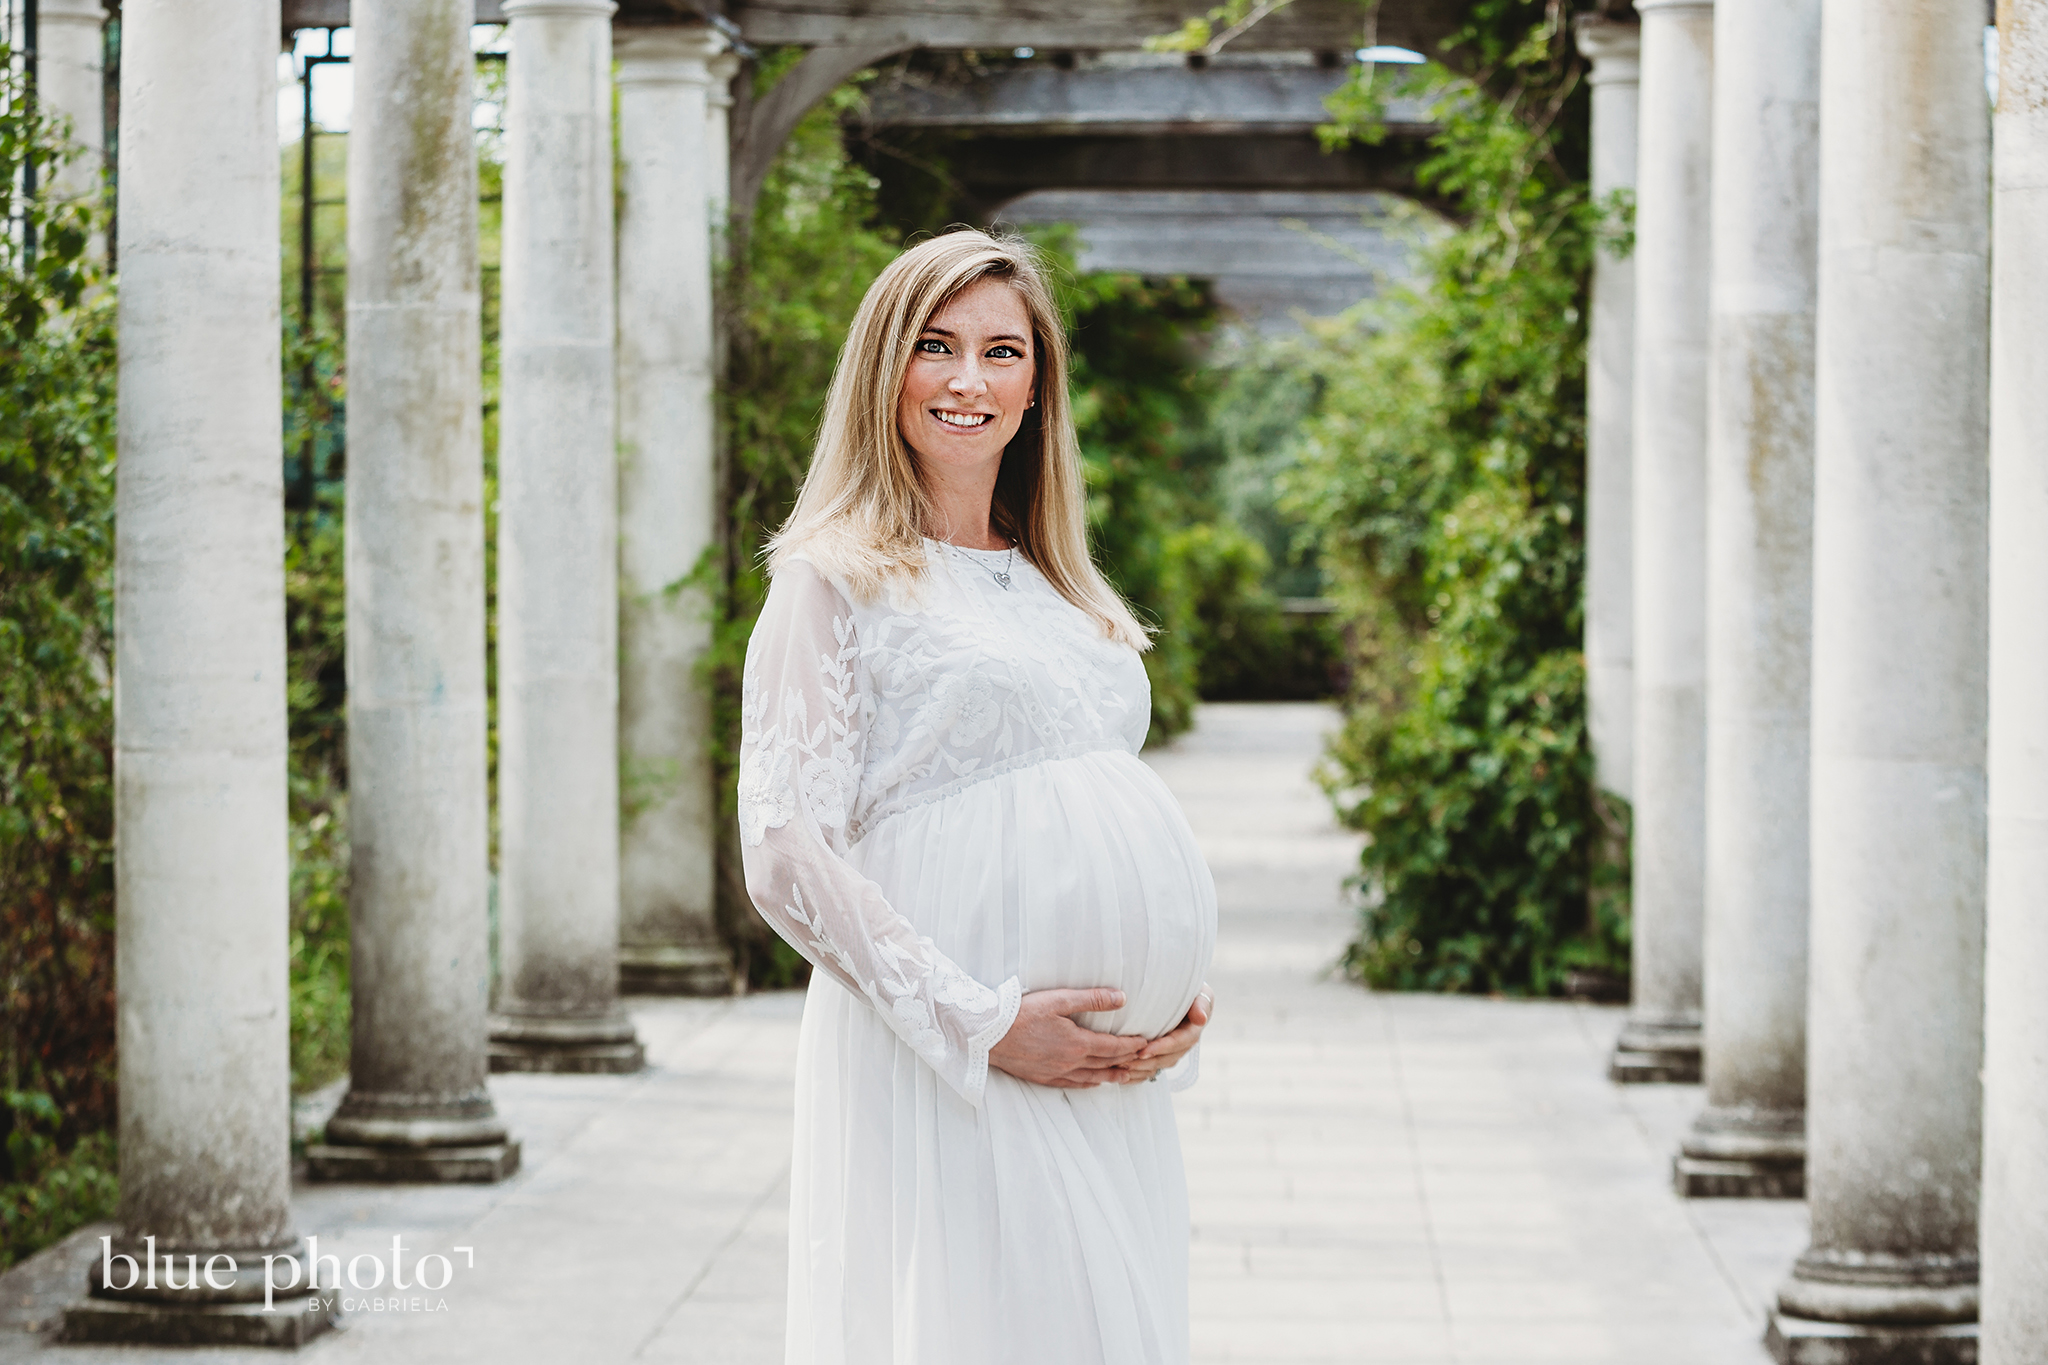 Maternity session in North London, a pregnant woman in white dress is possing in The Hill and Pergola Garden